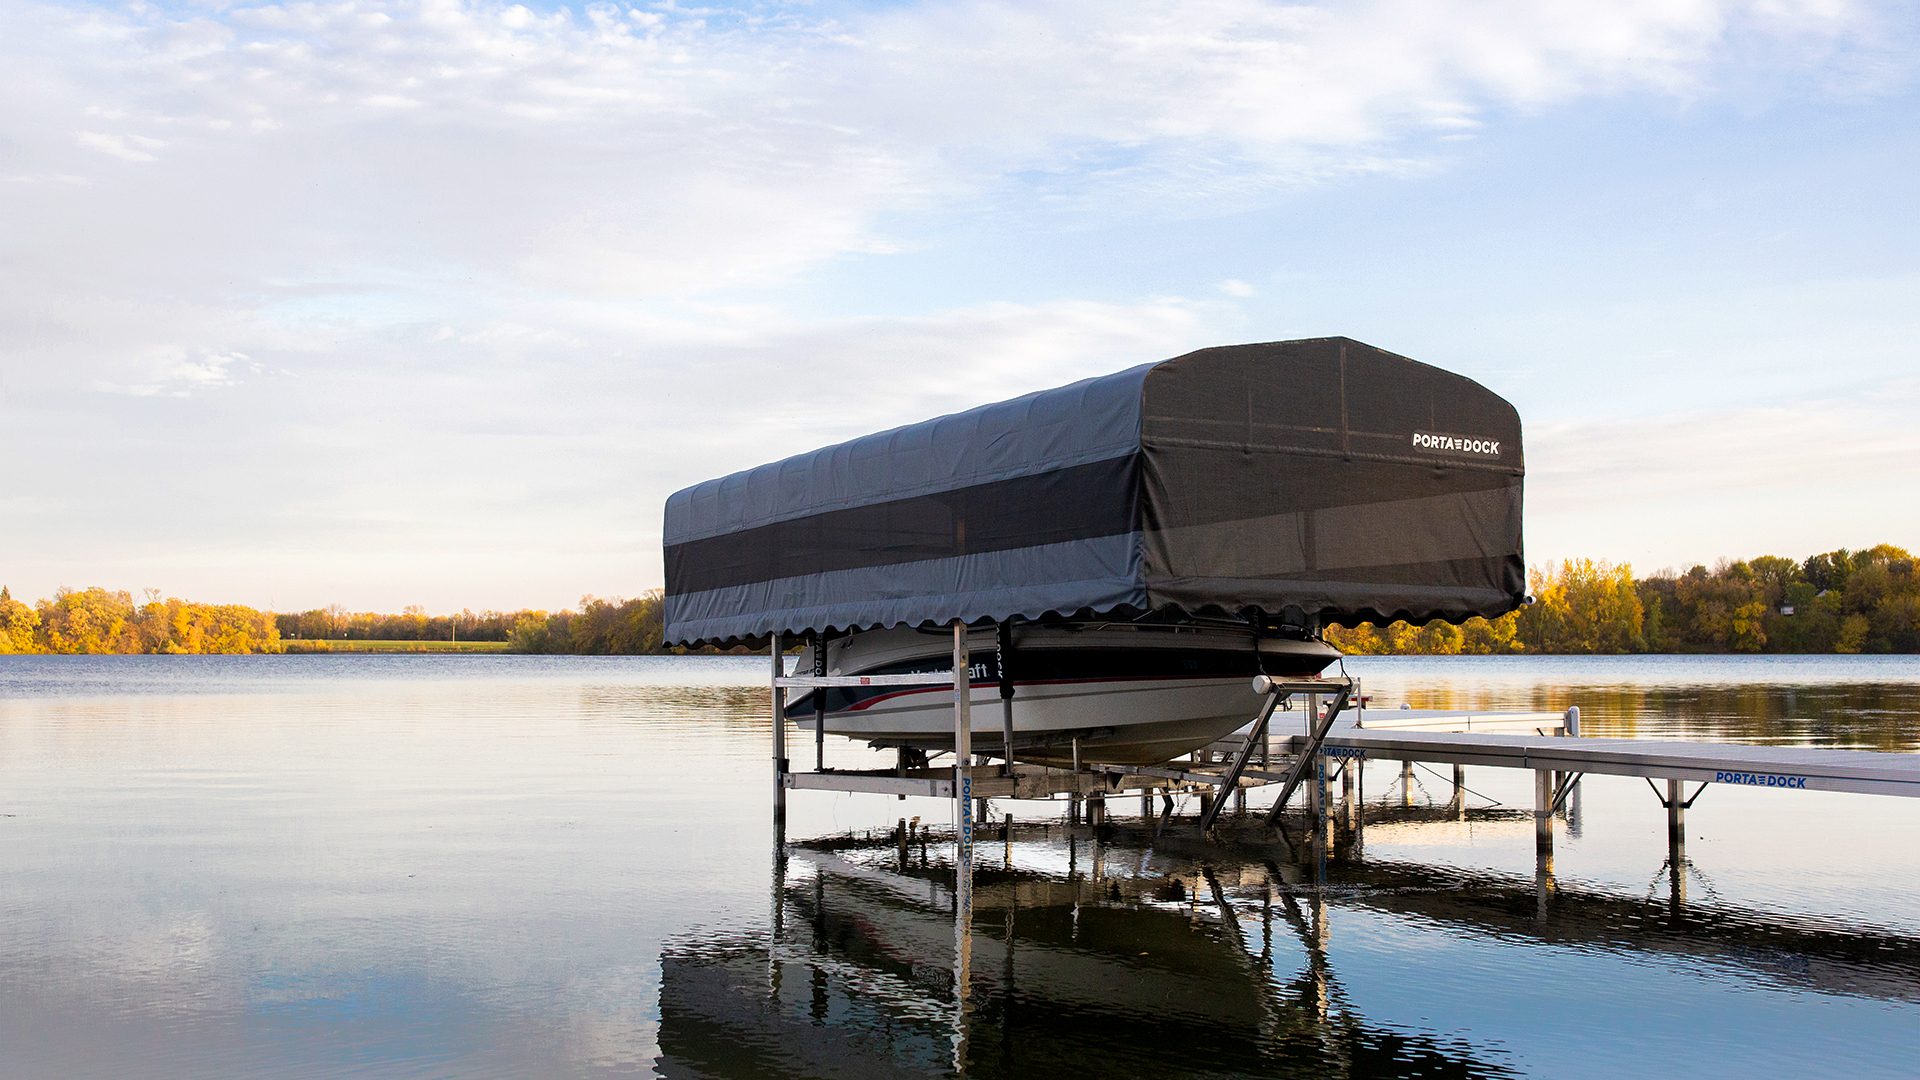 Porta-Dock boat and watercraft lifts with drop down canopy